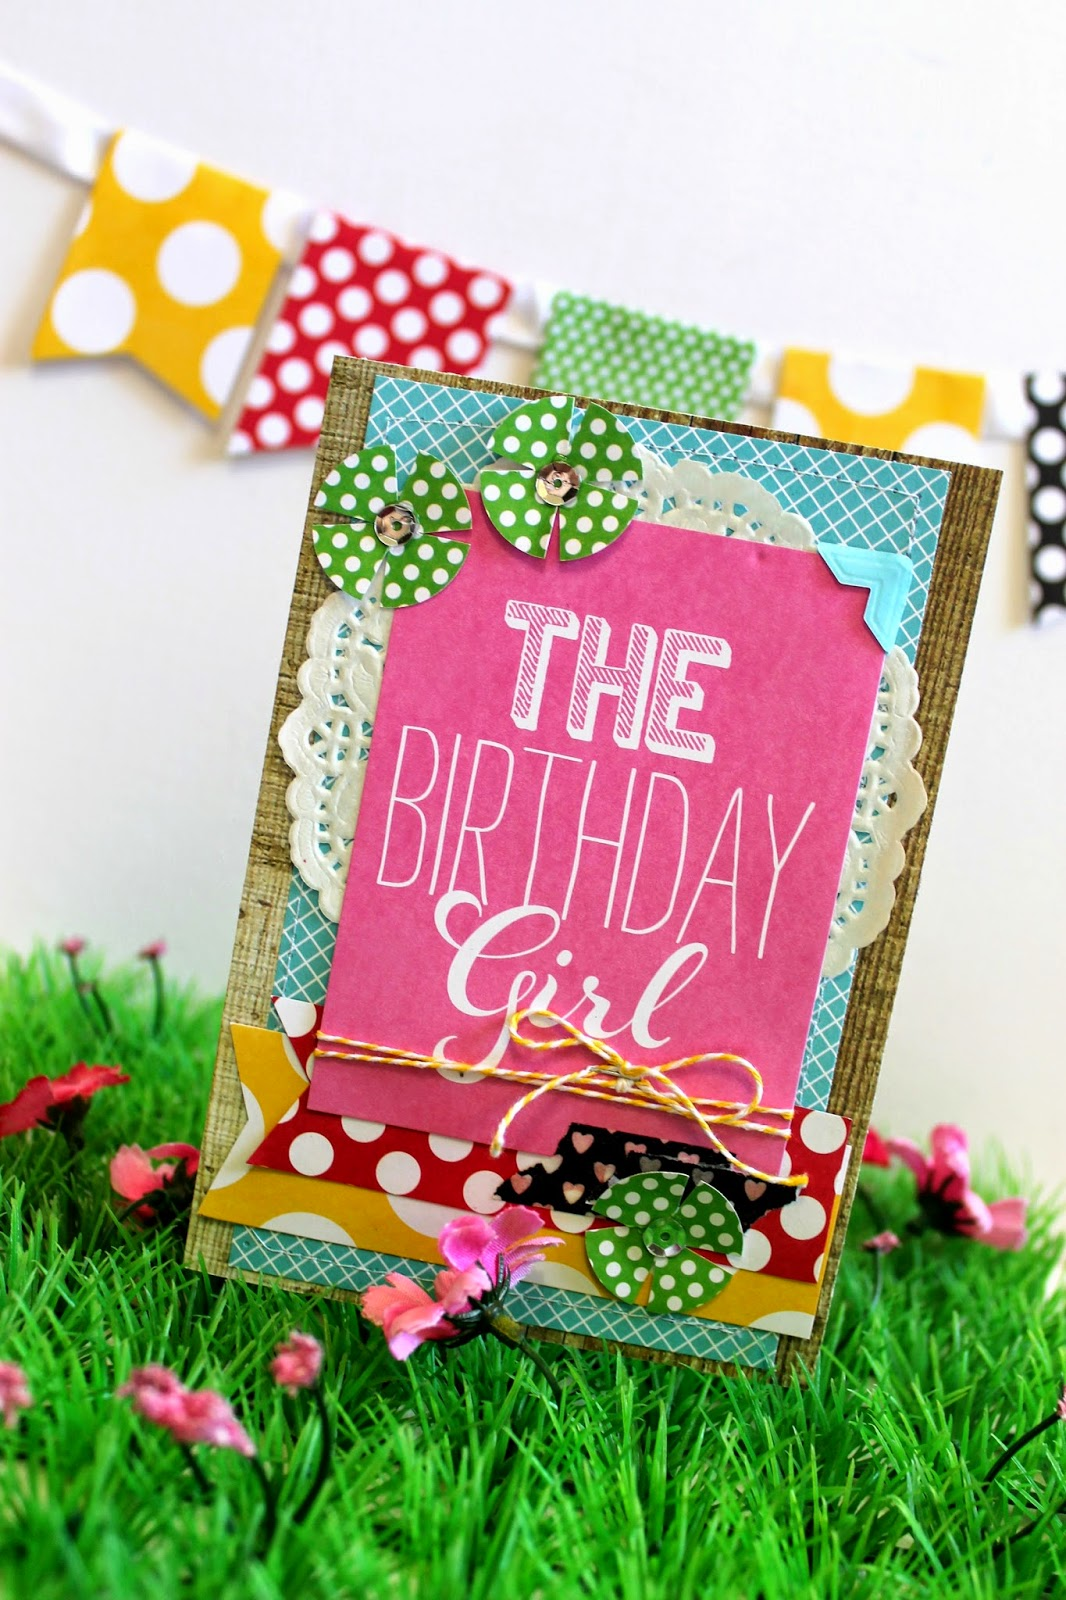 The Birthday Girl card using Me & My Big Ideas project Life cards.